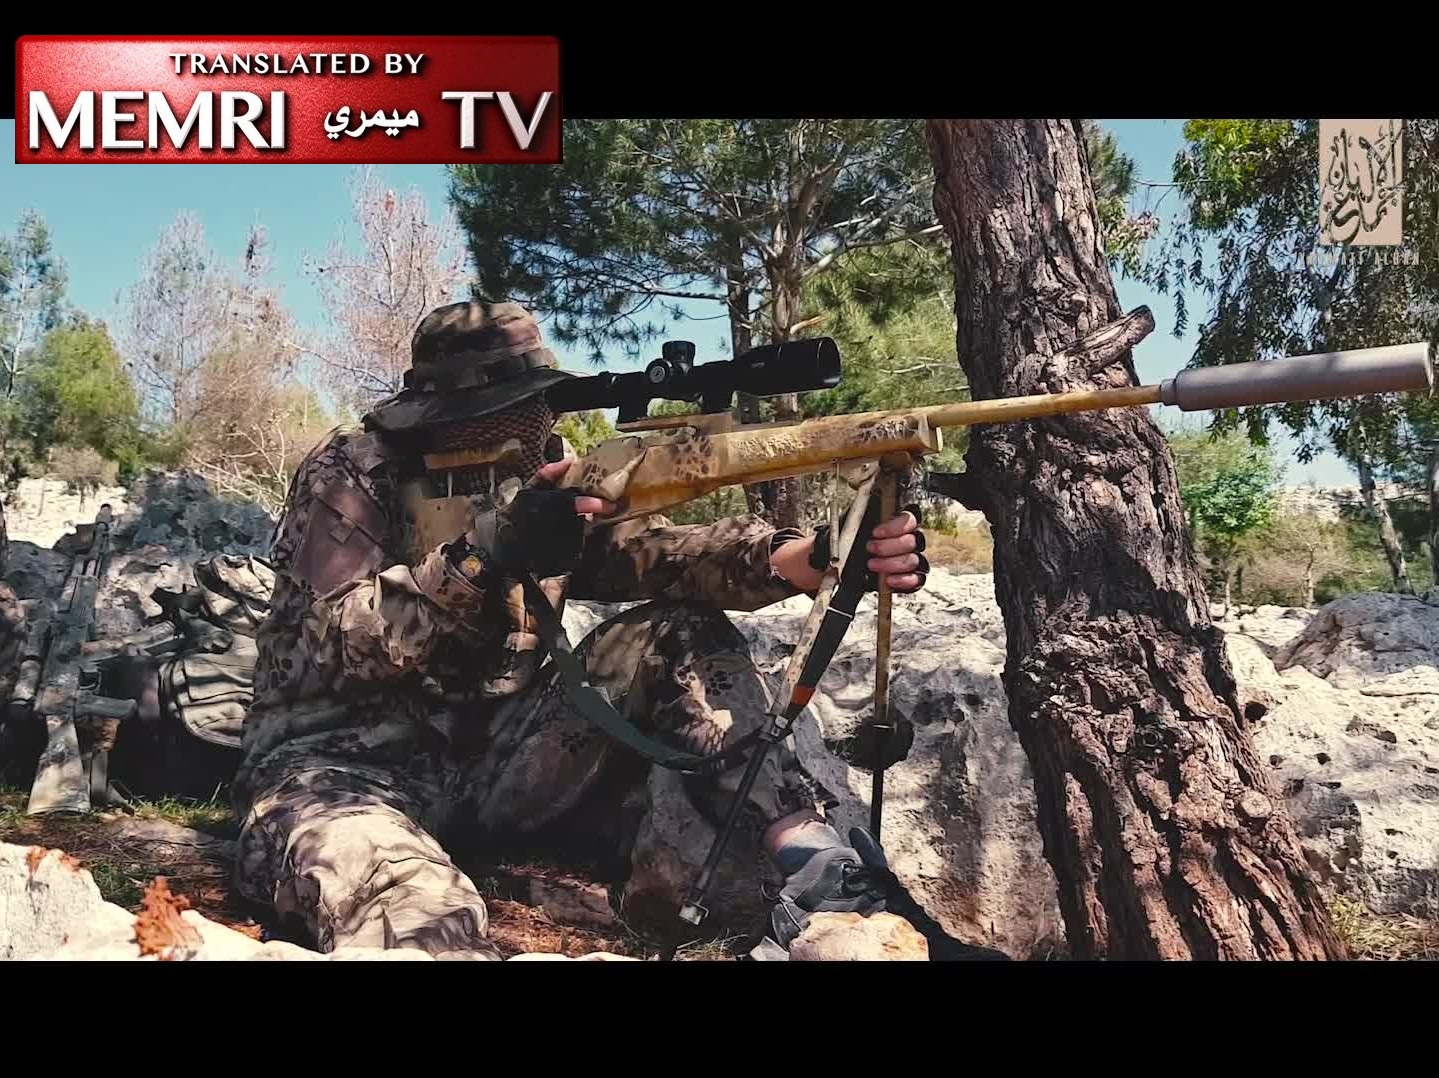 Albanian Jihadi Fighters in Syria Document the Life of Their Sniper Team